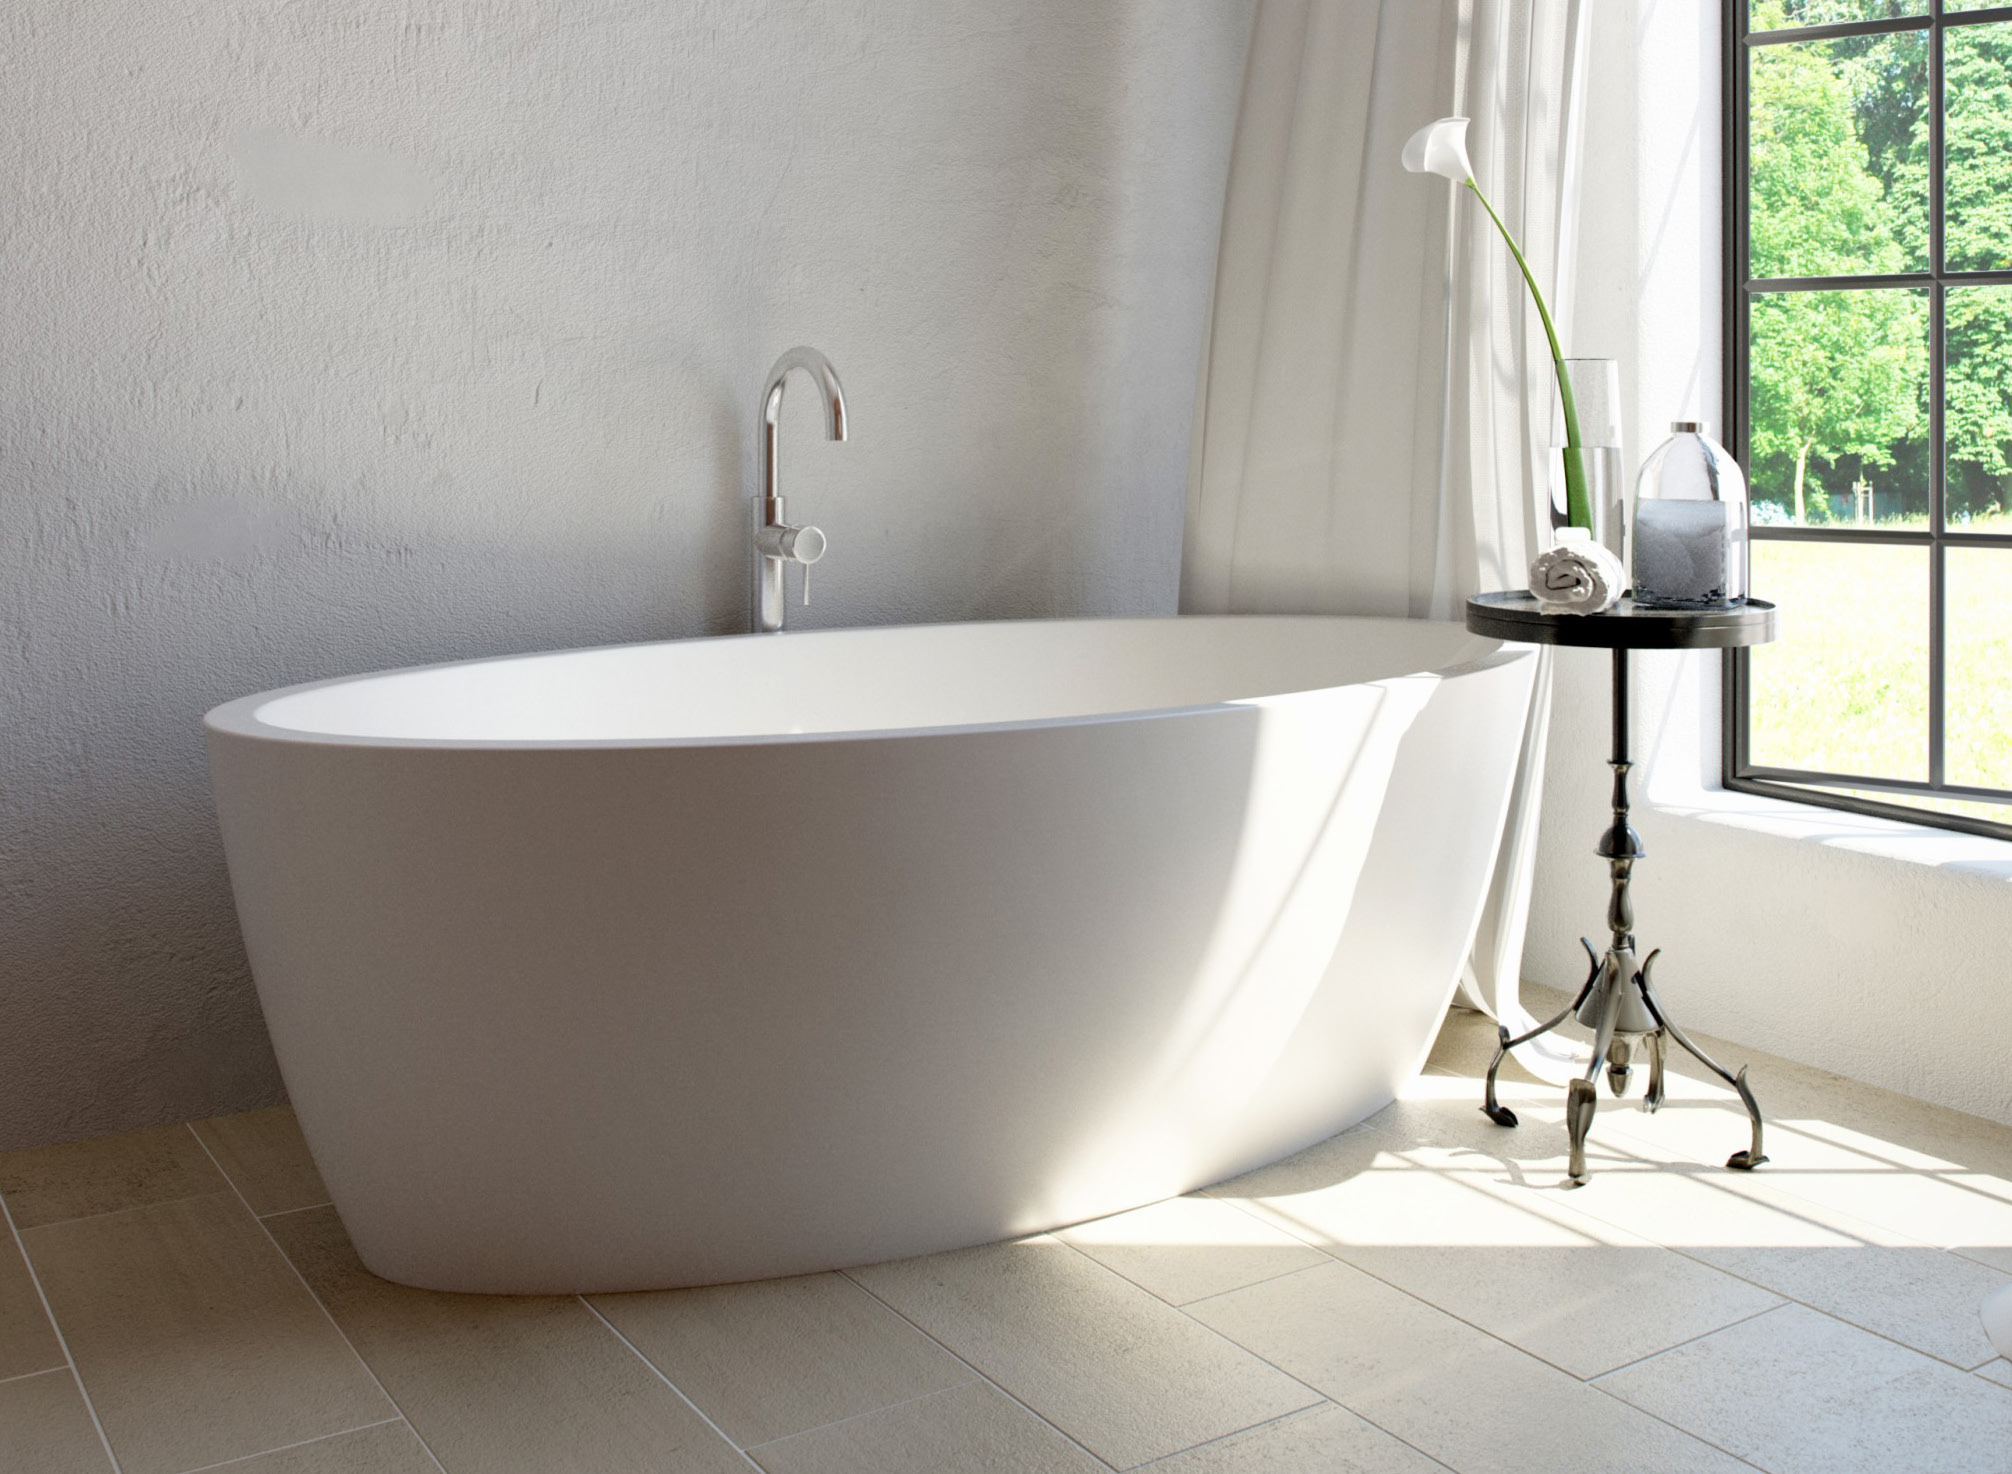 ovale-bathtub.jpg